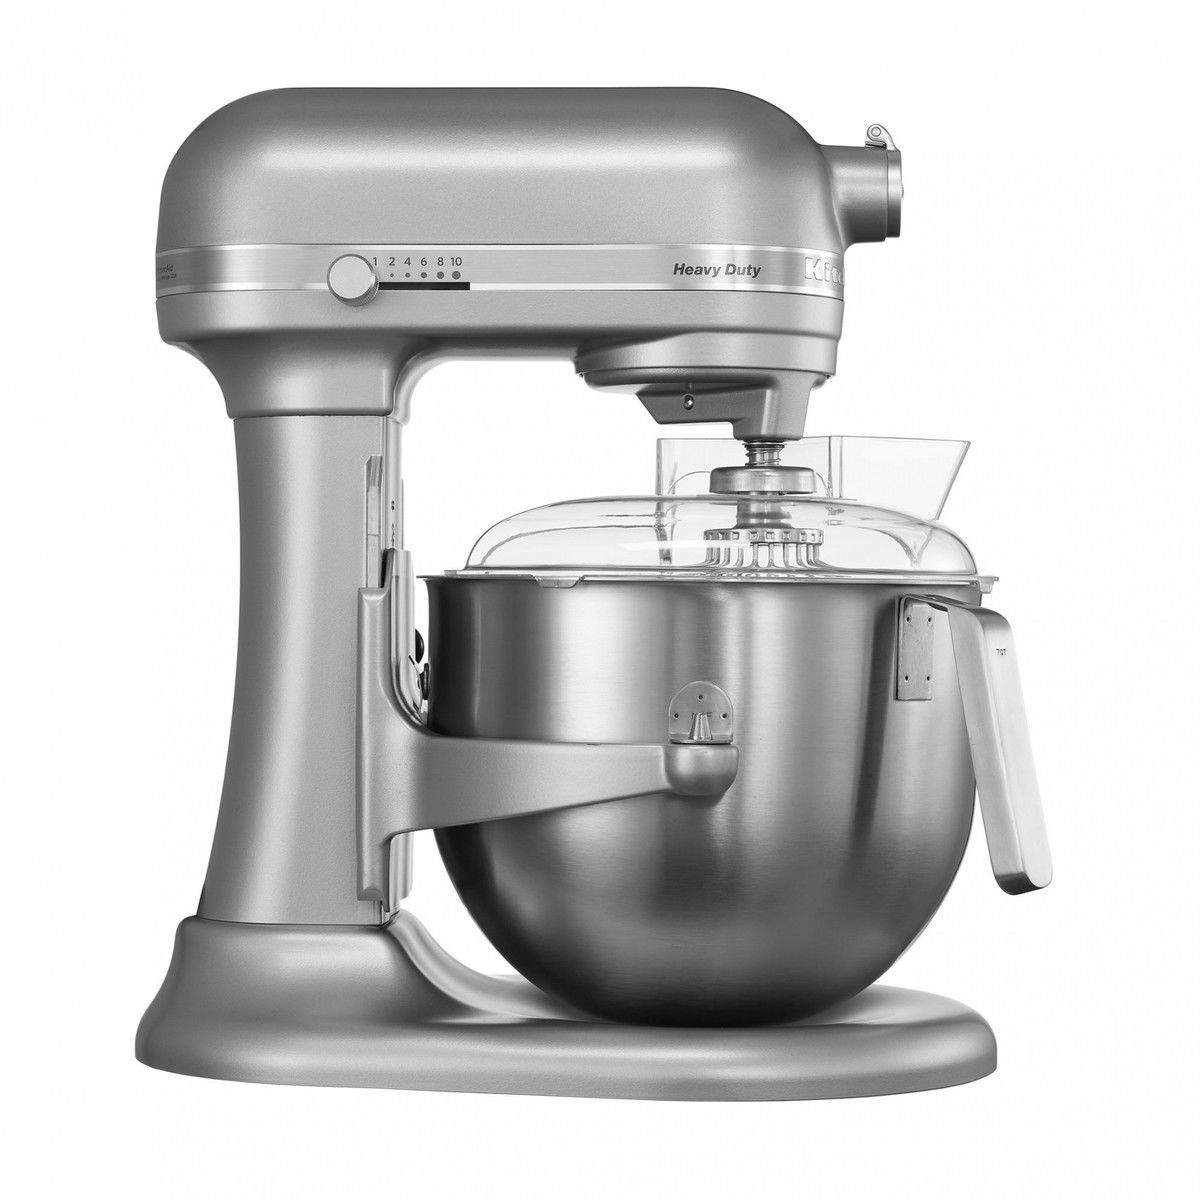 heavy duty 1 3 5ksm7591 food processor kitchenaid. Black Bedroom Furniture Sets. Home Design Ideas